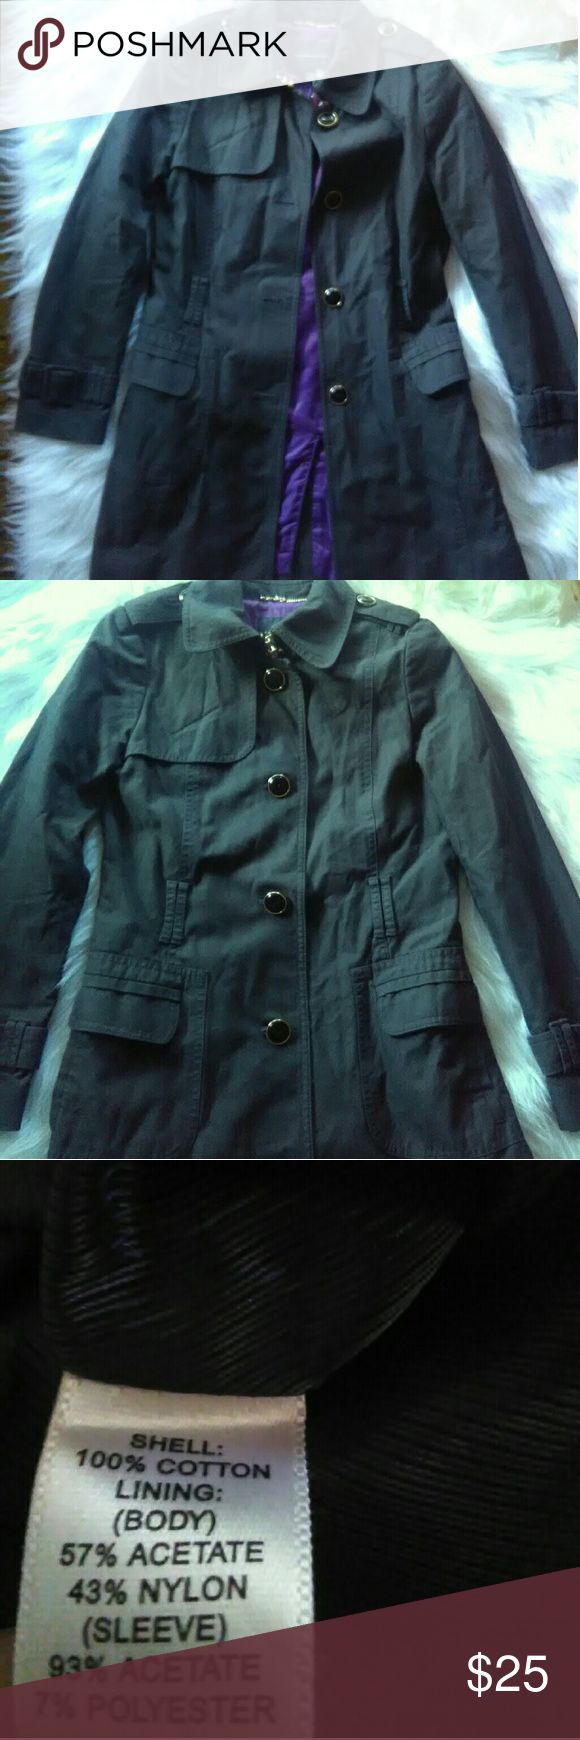 Banana republic trench coat Grey trech coat, beautiful purple on the inside. See pictures for material of coat. XS, petite. Belt for the jack is missing but all the buttons are all in tacked. Banana Republic Jackets & Coats Trench Coats